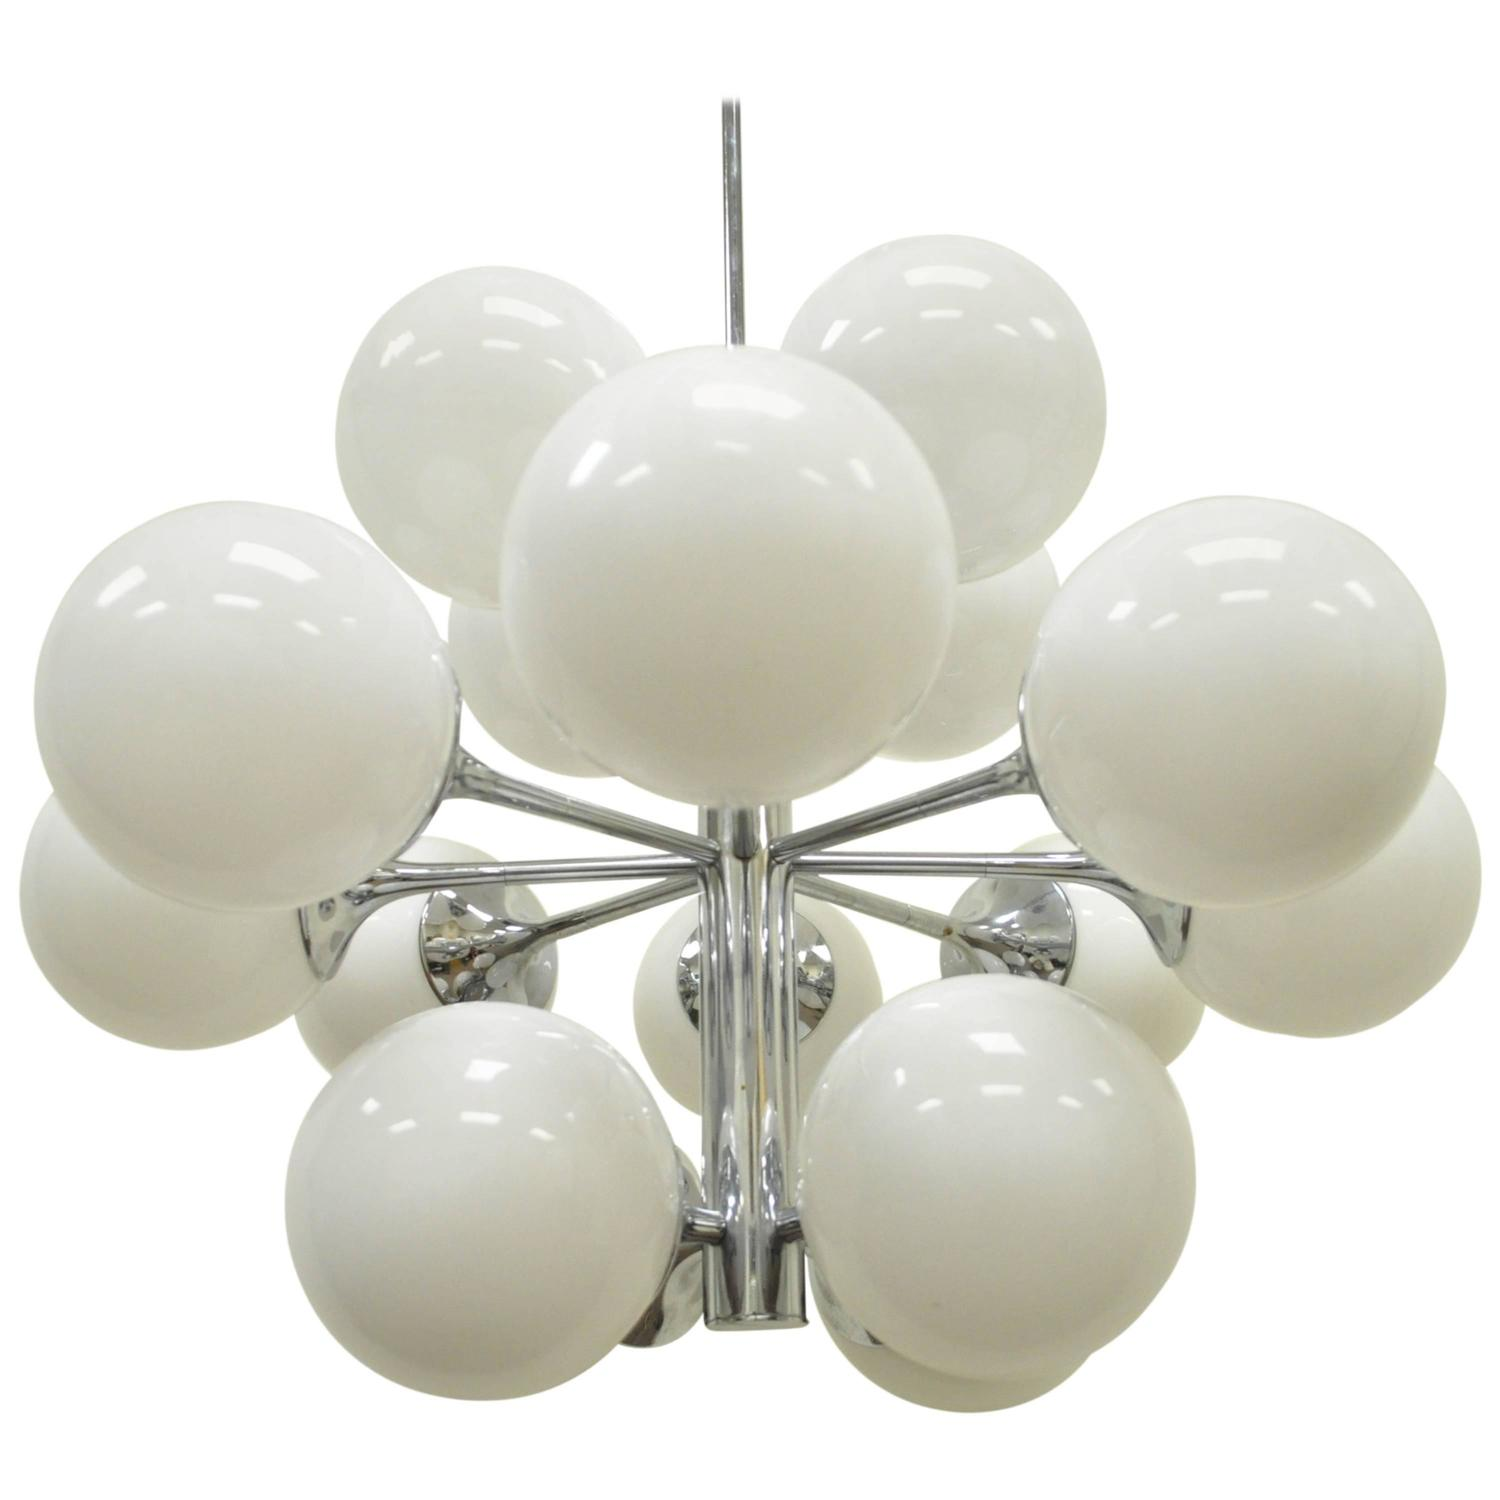 Twelve Light Sputnik Satellite Chandelier Pendant Chrome Glass by